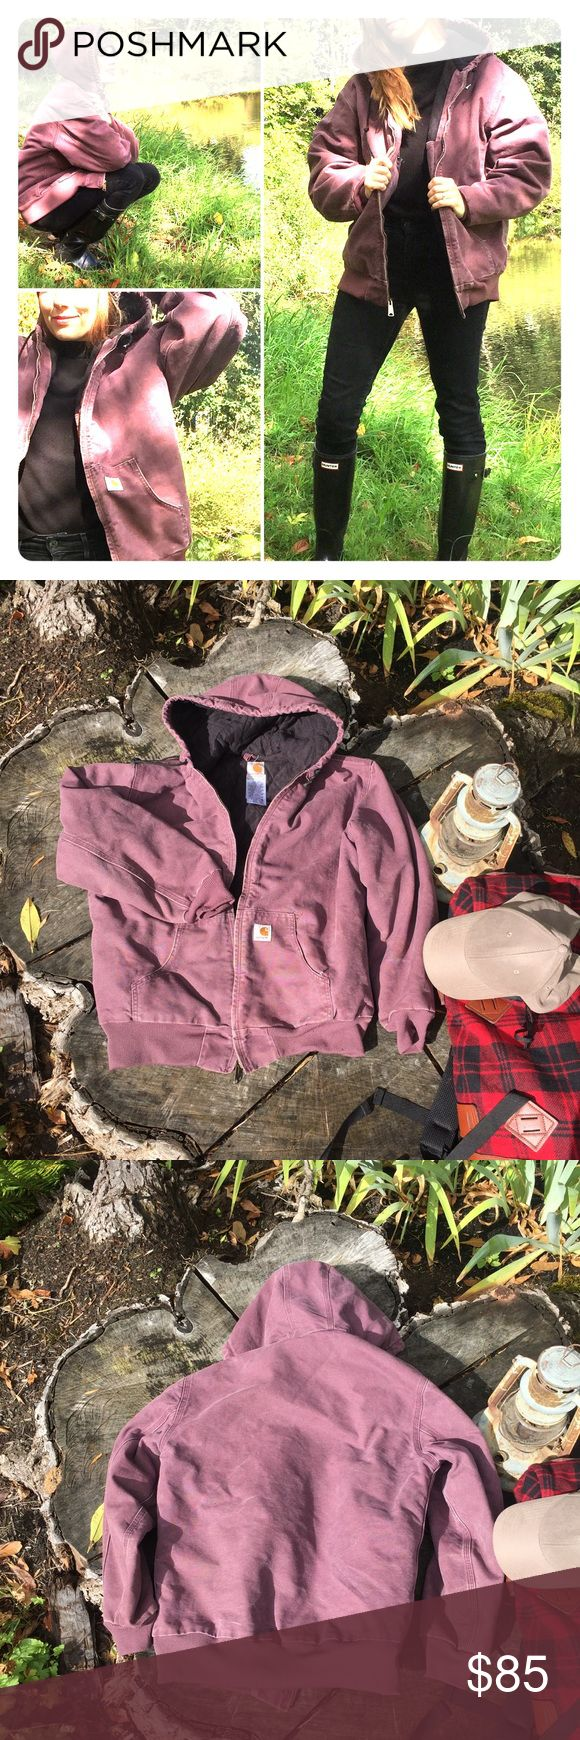 Carhartt Jacket This Carhartt Jacket in dusty plum is perfect for this coming fall and winter! THE accessory for you next outdoor adventure or just a trip to the pumpkin patch or tree farm! This has some wear from regular use- some pilling/etc. see pics. For size reference: this is a large and I normally wear size xs/s. Offers welcome or bundle and save! Happy poshing loves! 💕 Carhartt Jackets & Coats Utility Jackets